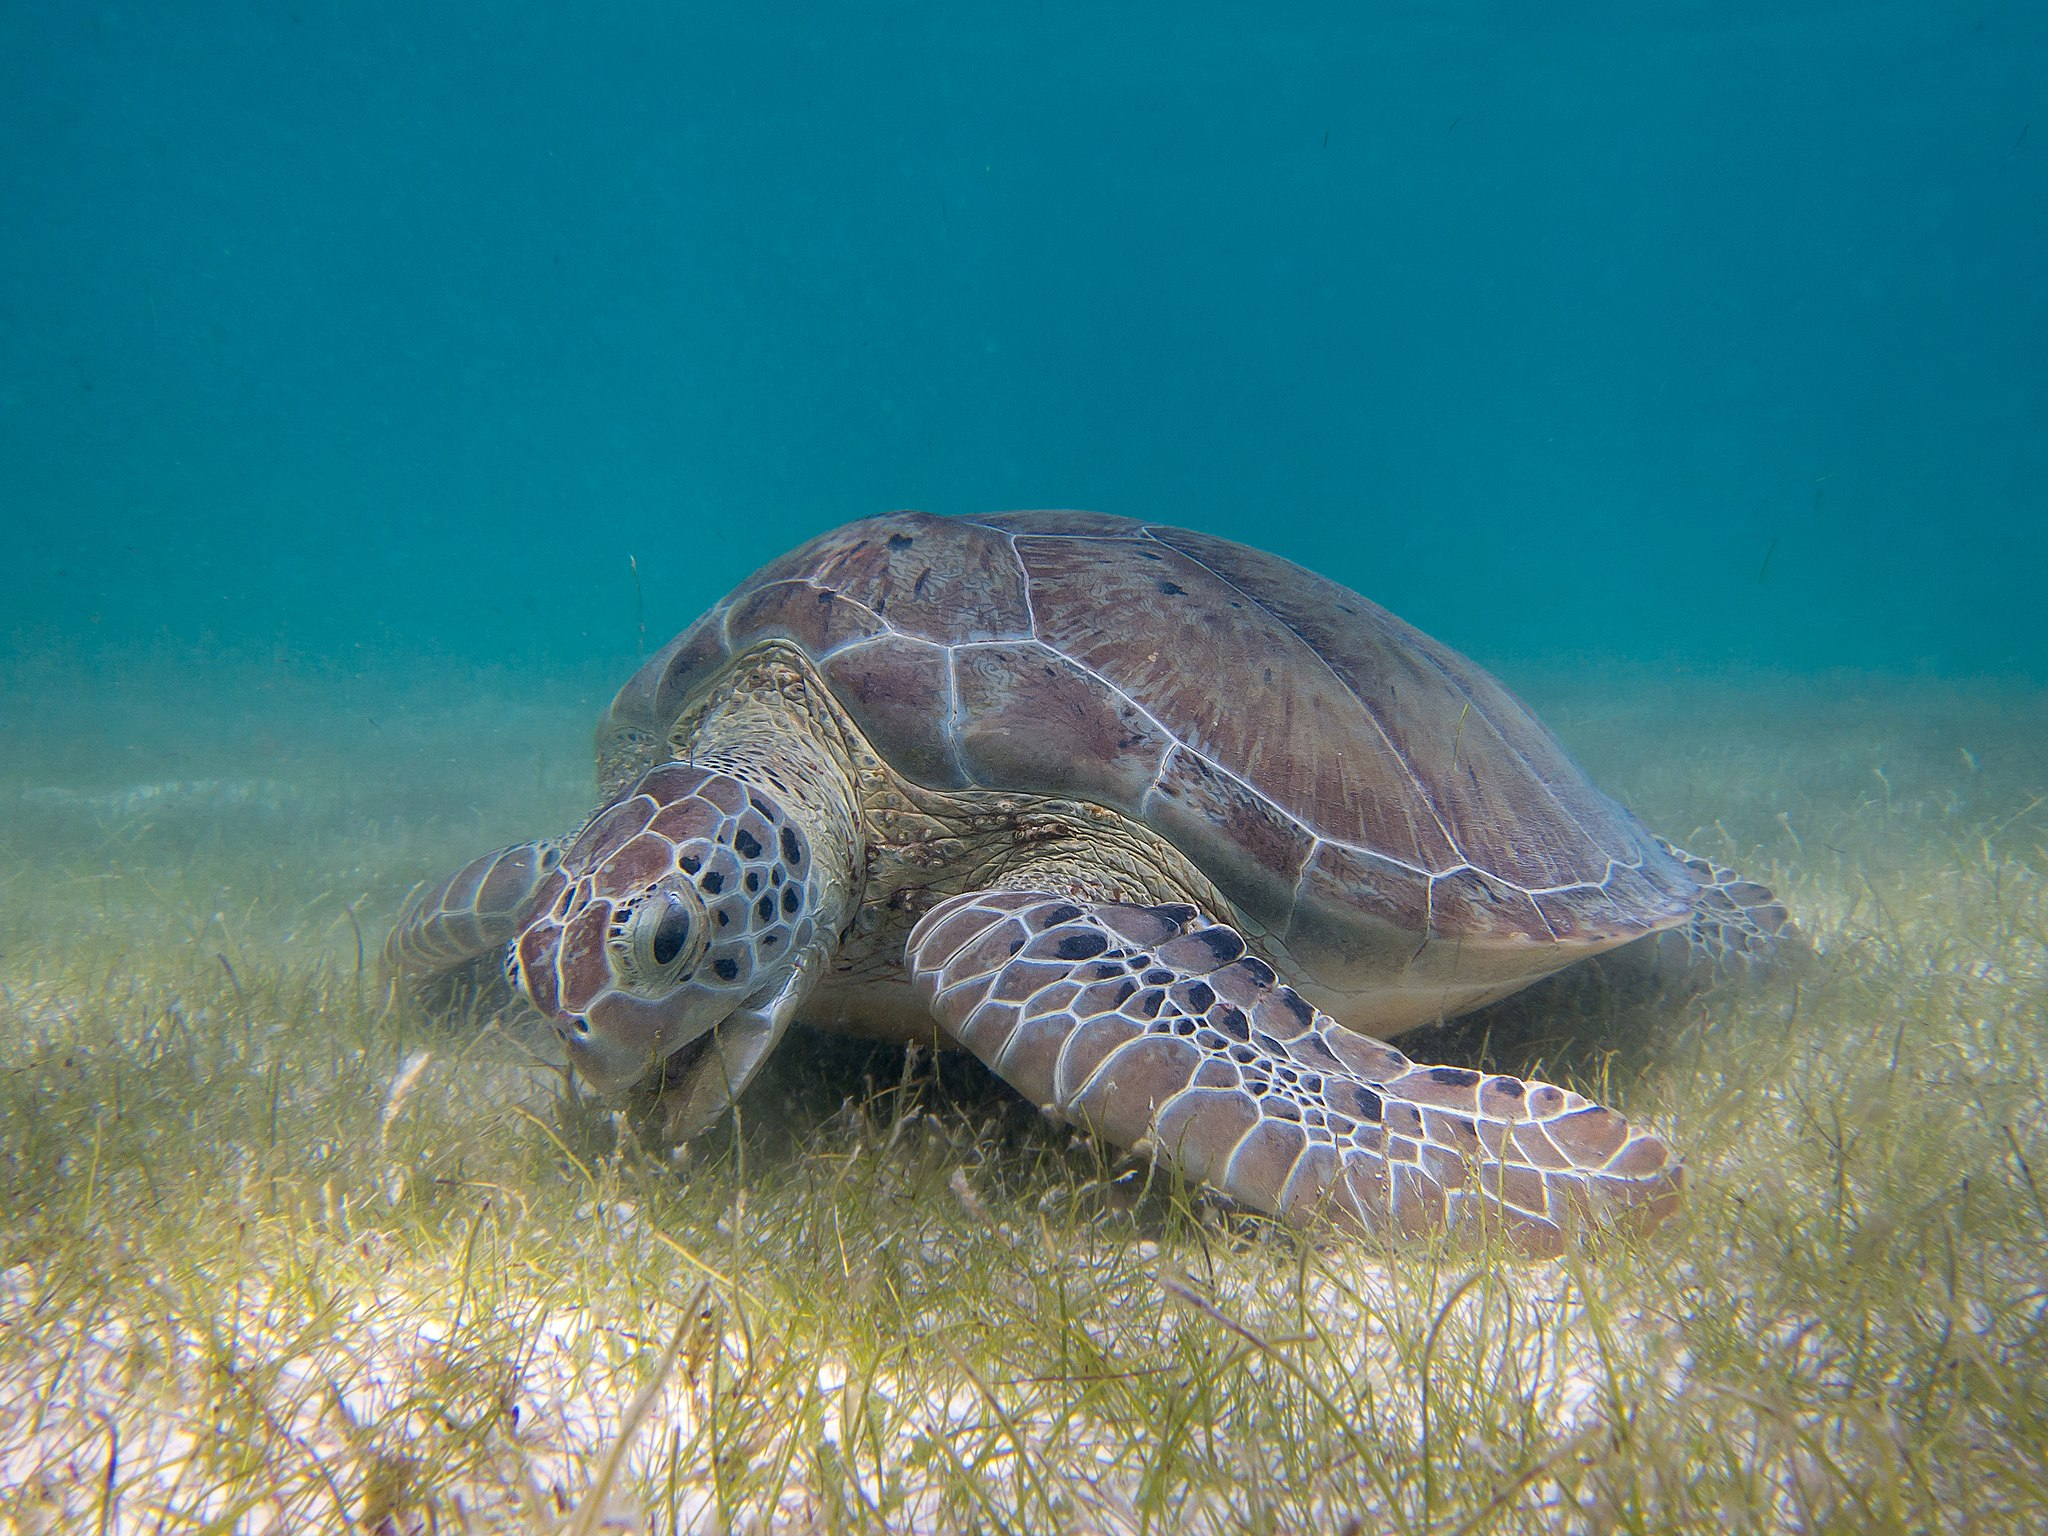 Seagrass meadows harbor wildlife for centuries, highlighting need for conservation